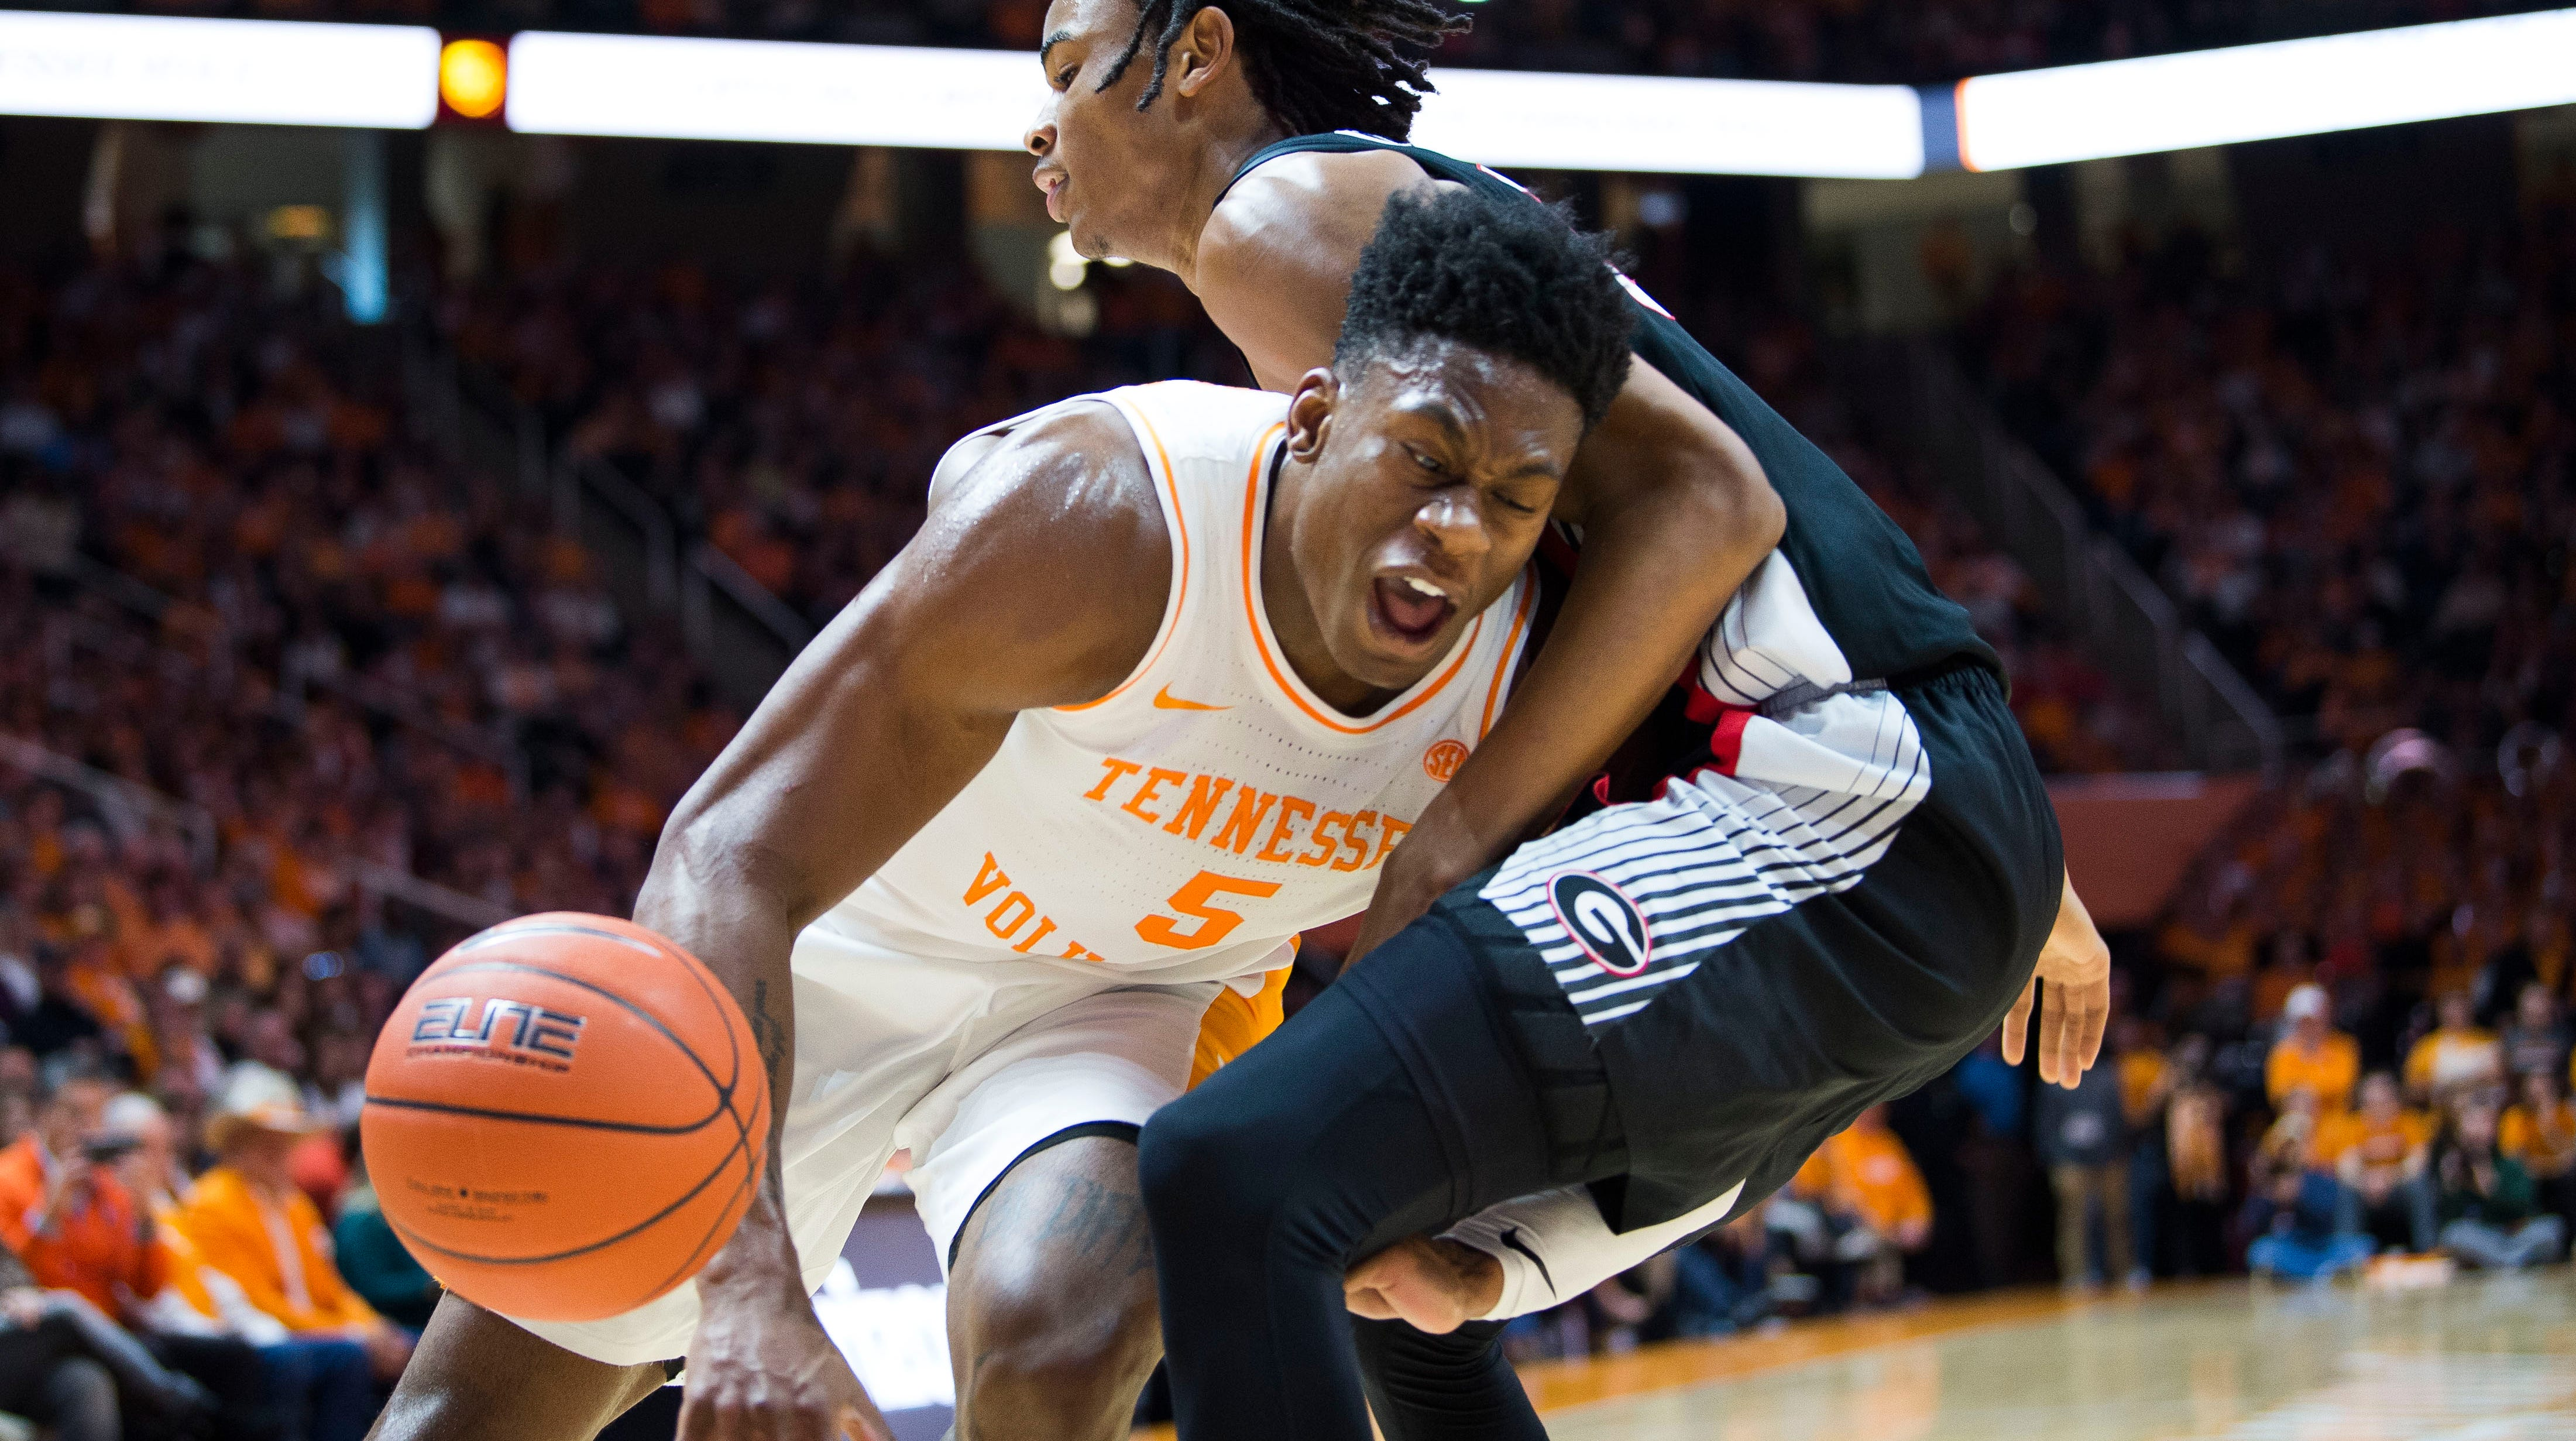 Tennessee's Admiral Schofield (5) is fouled by Georgia's Nicolas Clazton (33) during a college basketball game between Tennessee and Georgia at Thompson-Boling Arena Saturday, Jan. 5, 2019.